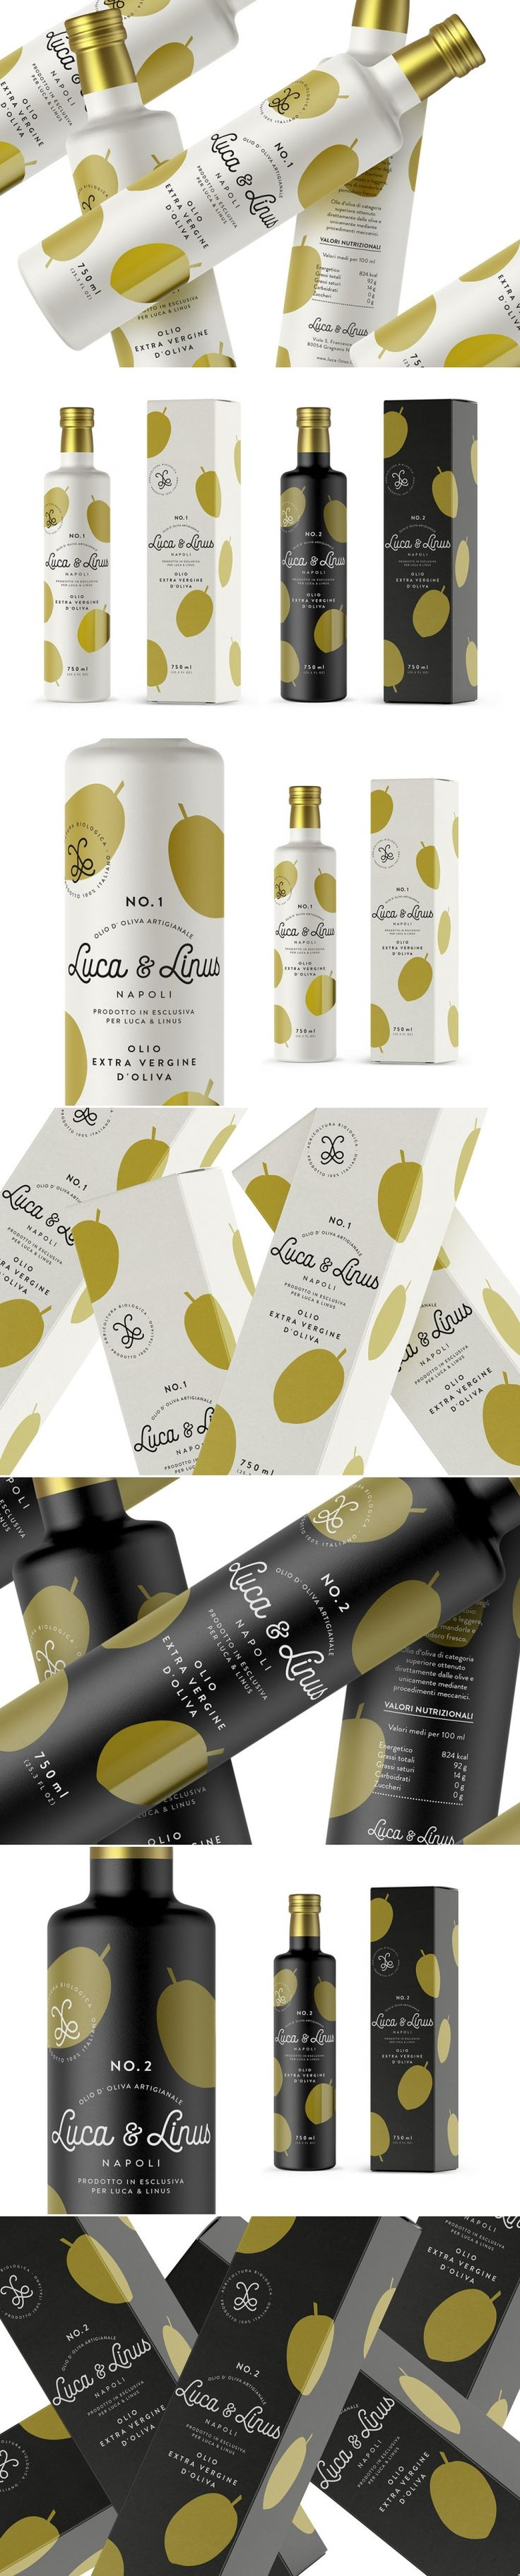 Take A Look At This Fun Conceptual Olive Oil Packaging — The Dieline | Packaging & Branding Design & Innovation News